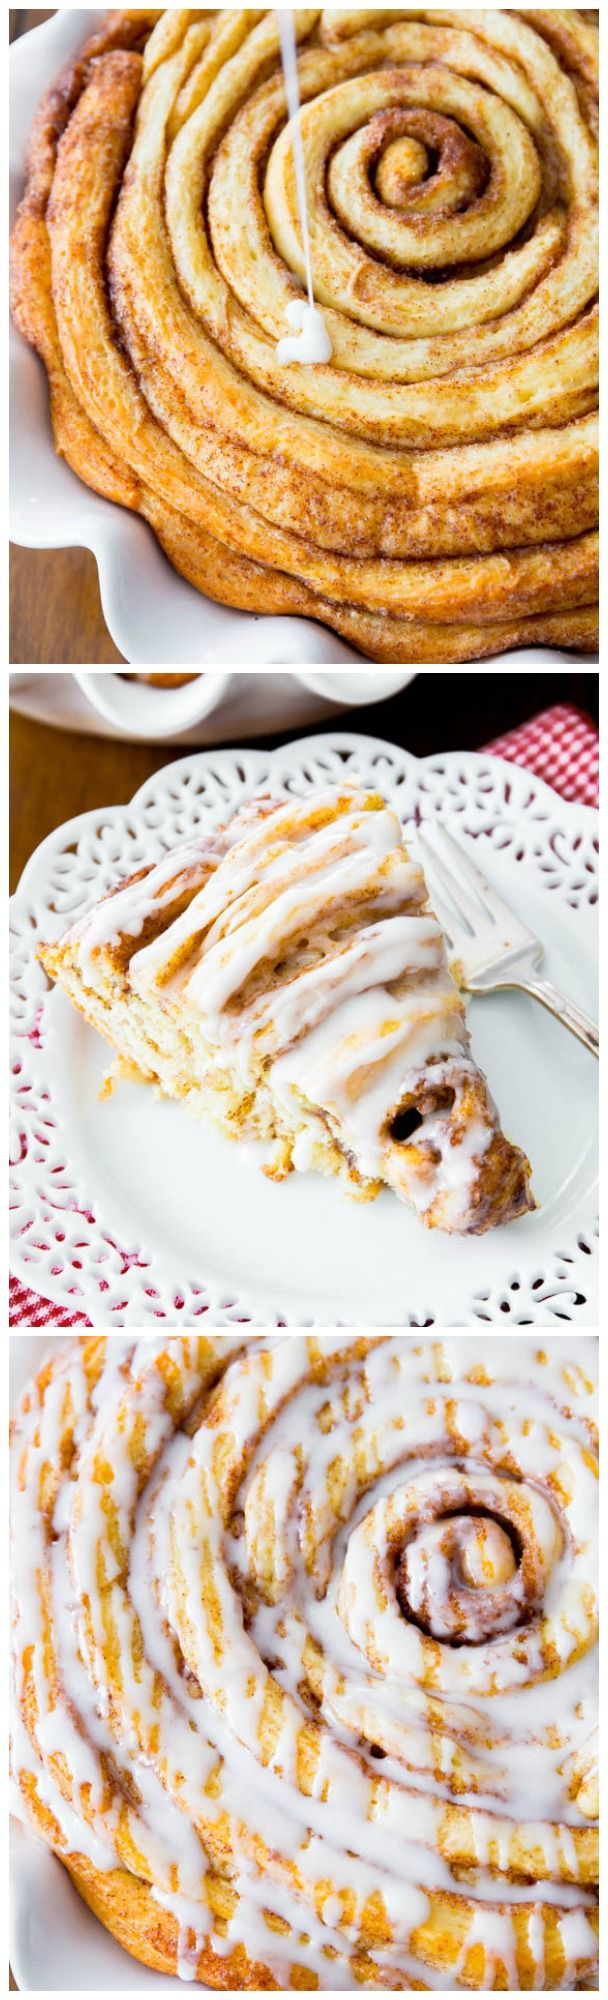 chrome hearts forum Learn how to make a beautiful  fluffy  and soft cinnamon roll cake using this kitchen tested dough recipe